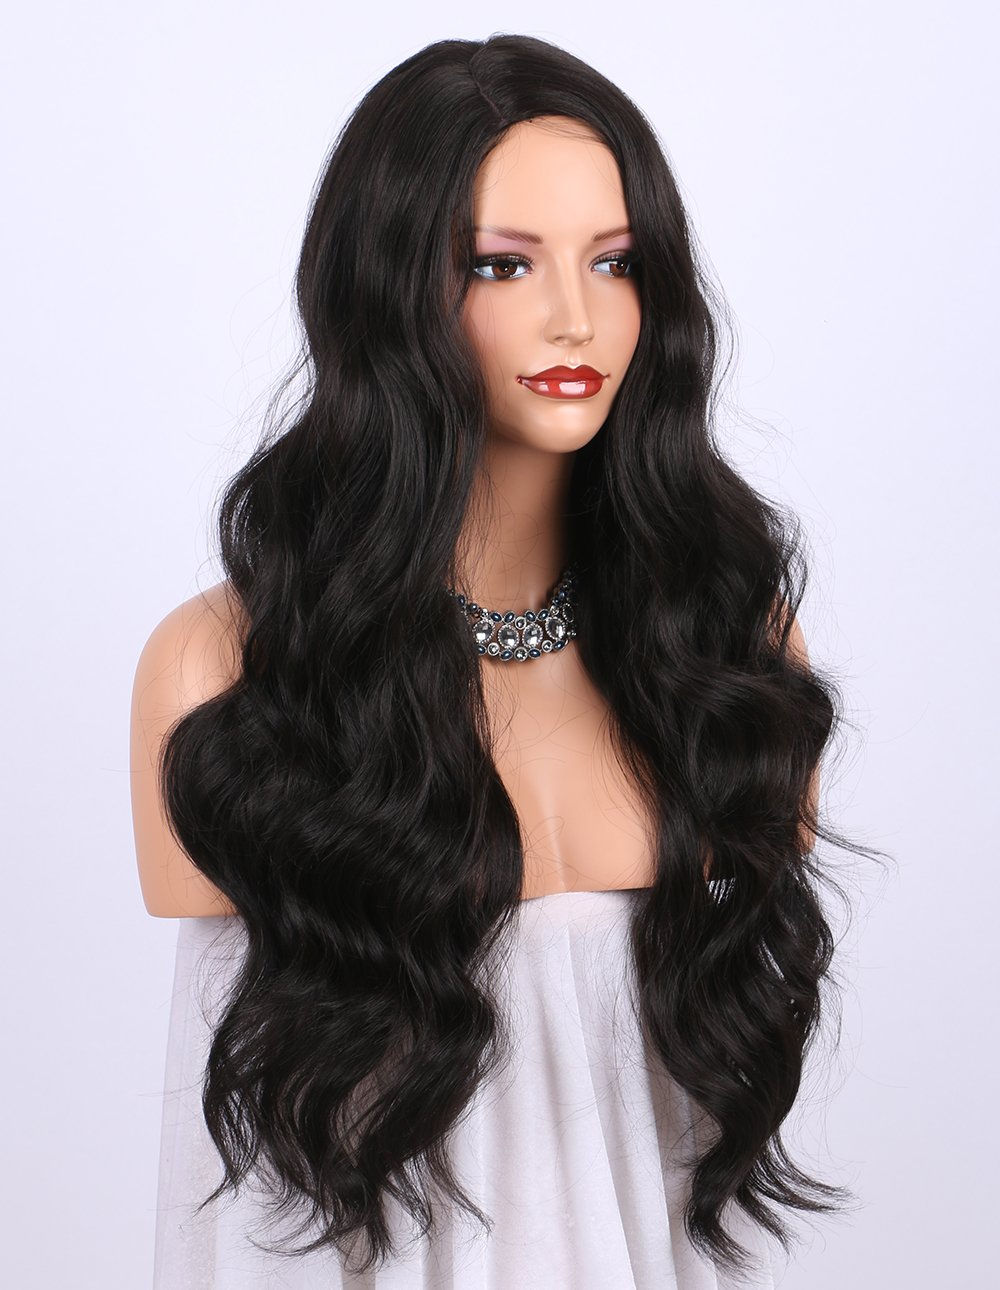 K'ryssma Dark Brown Synthetic Wigs for women - Natural Looking Long Wavy Right Side Parting NONE Lace Heat Resistant Replacement Wig Full Machine Made 24 inches (#2) by K'ryssma